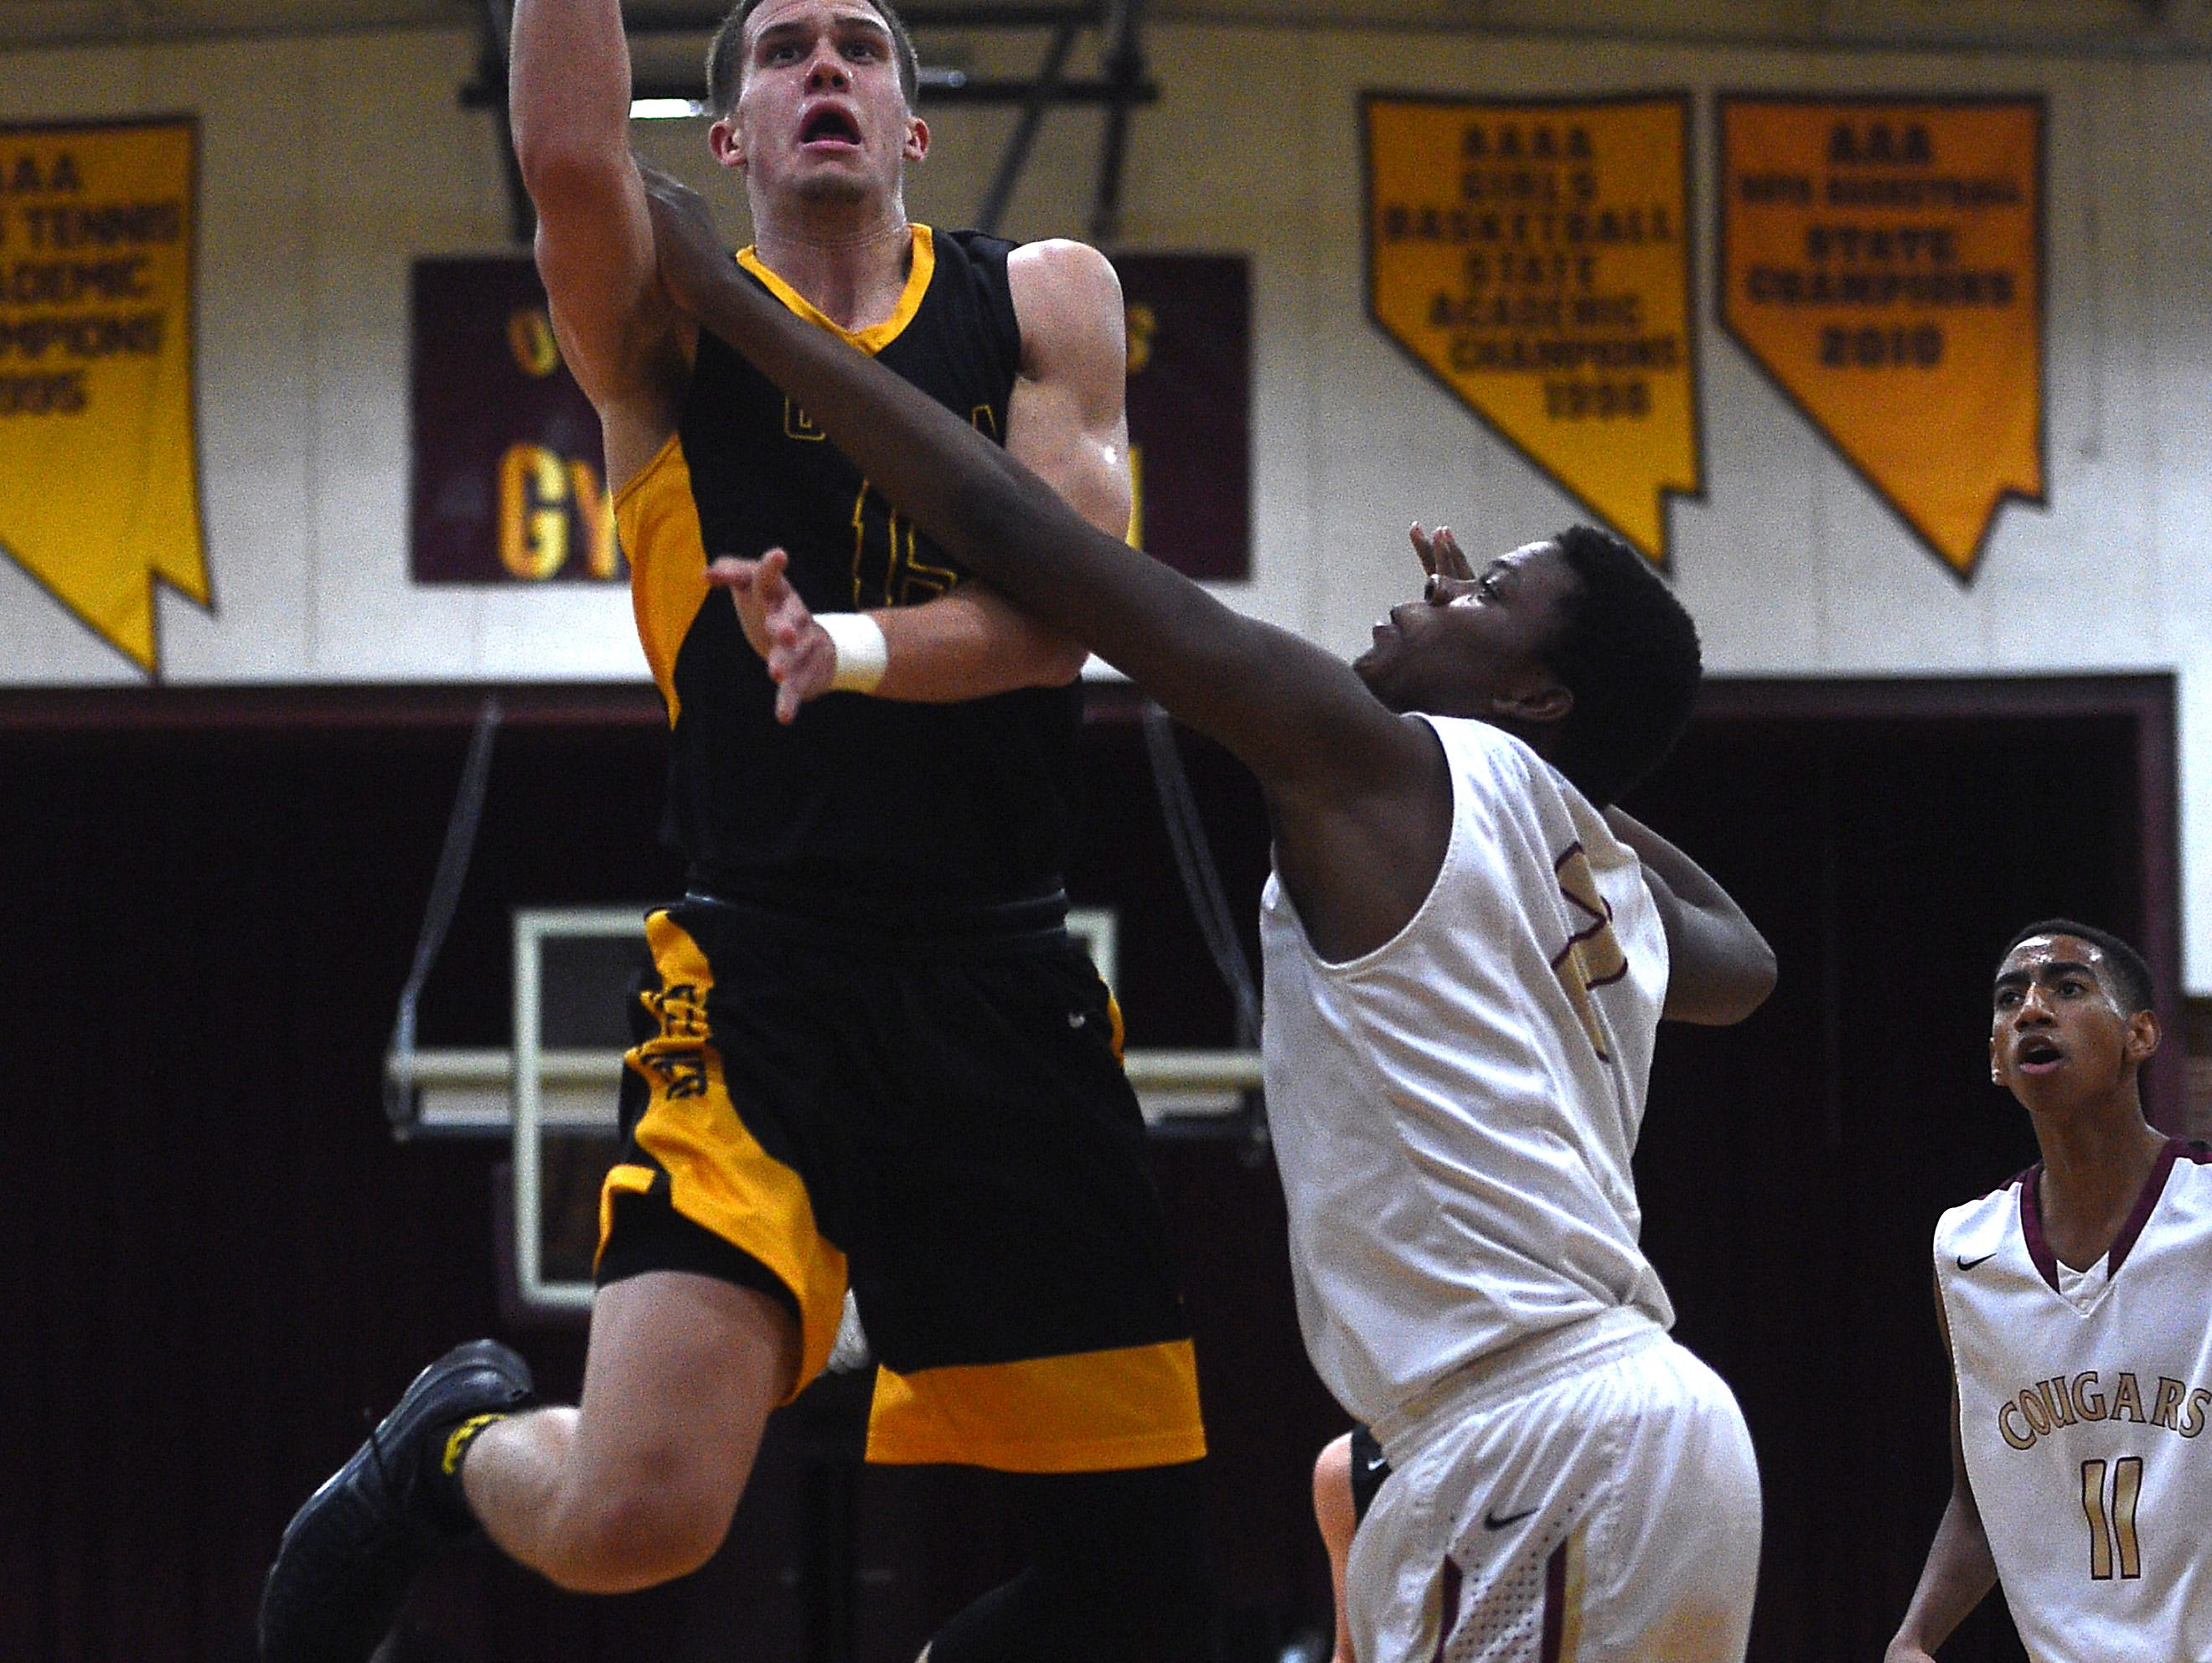 Galena's Dillon Voyles (15) shoots over Golden Valley's Etrell Bowers (2) during the Railroader Classic basketball tournament at Sparks High School on Dec. 2, 2016.